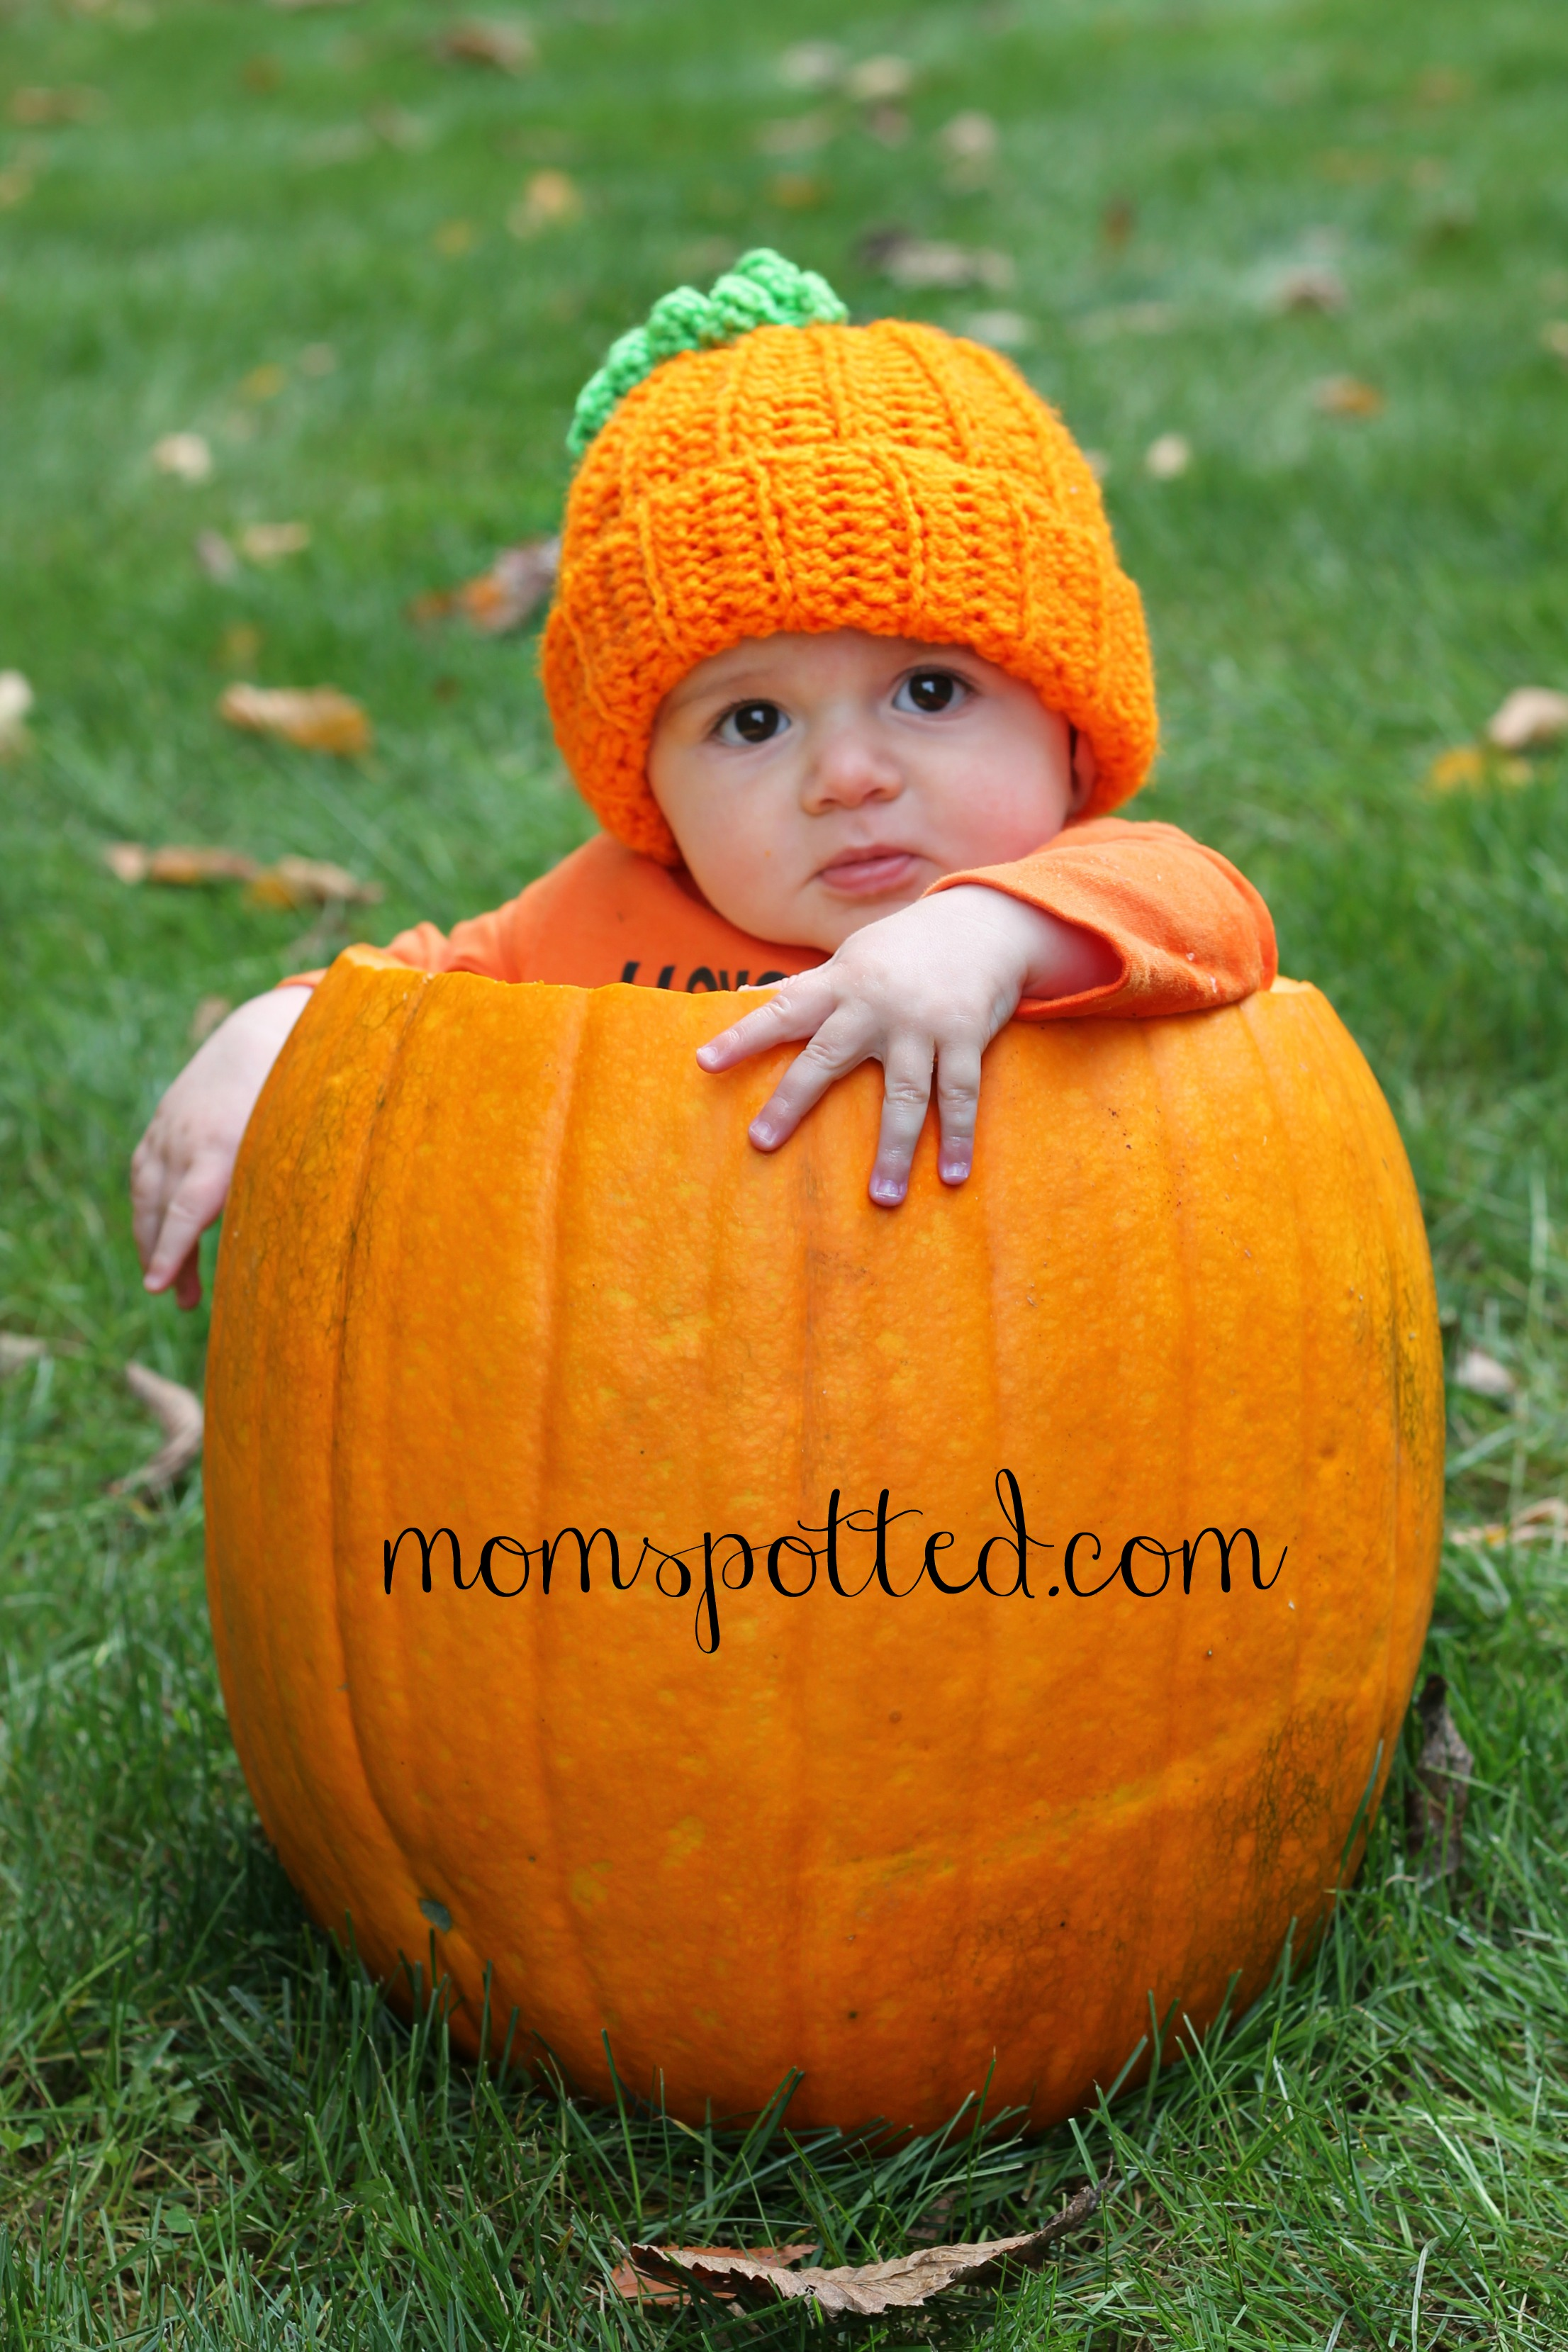 Baby Pumpkin Adorable Baby Photography Momspotted